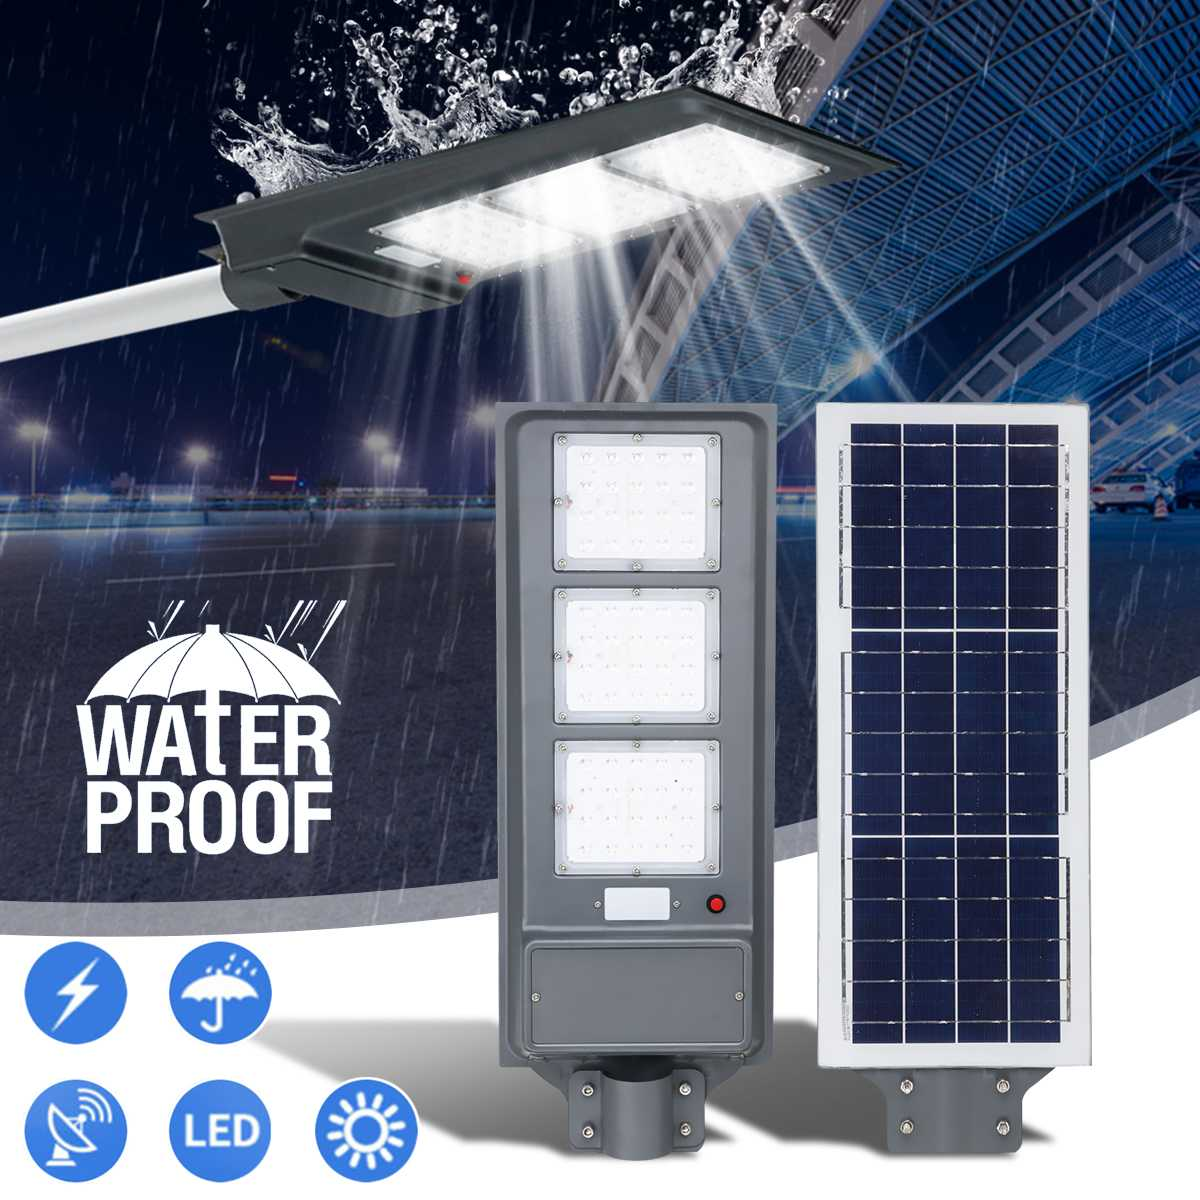 Solar Street LED Light 20/40/60W PIR Motion Sensor Radar Induction Wall Lamp Light Pole Polycrystalline High Efficiency Outdoor